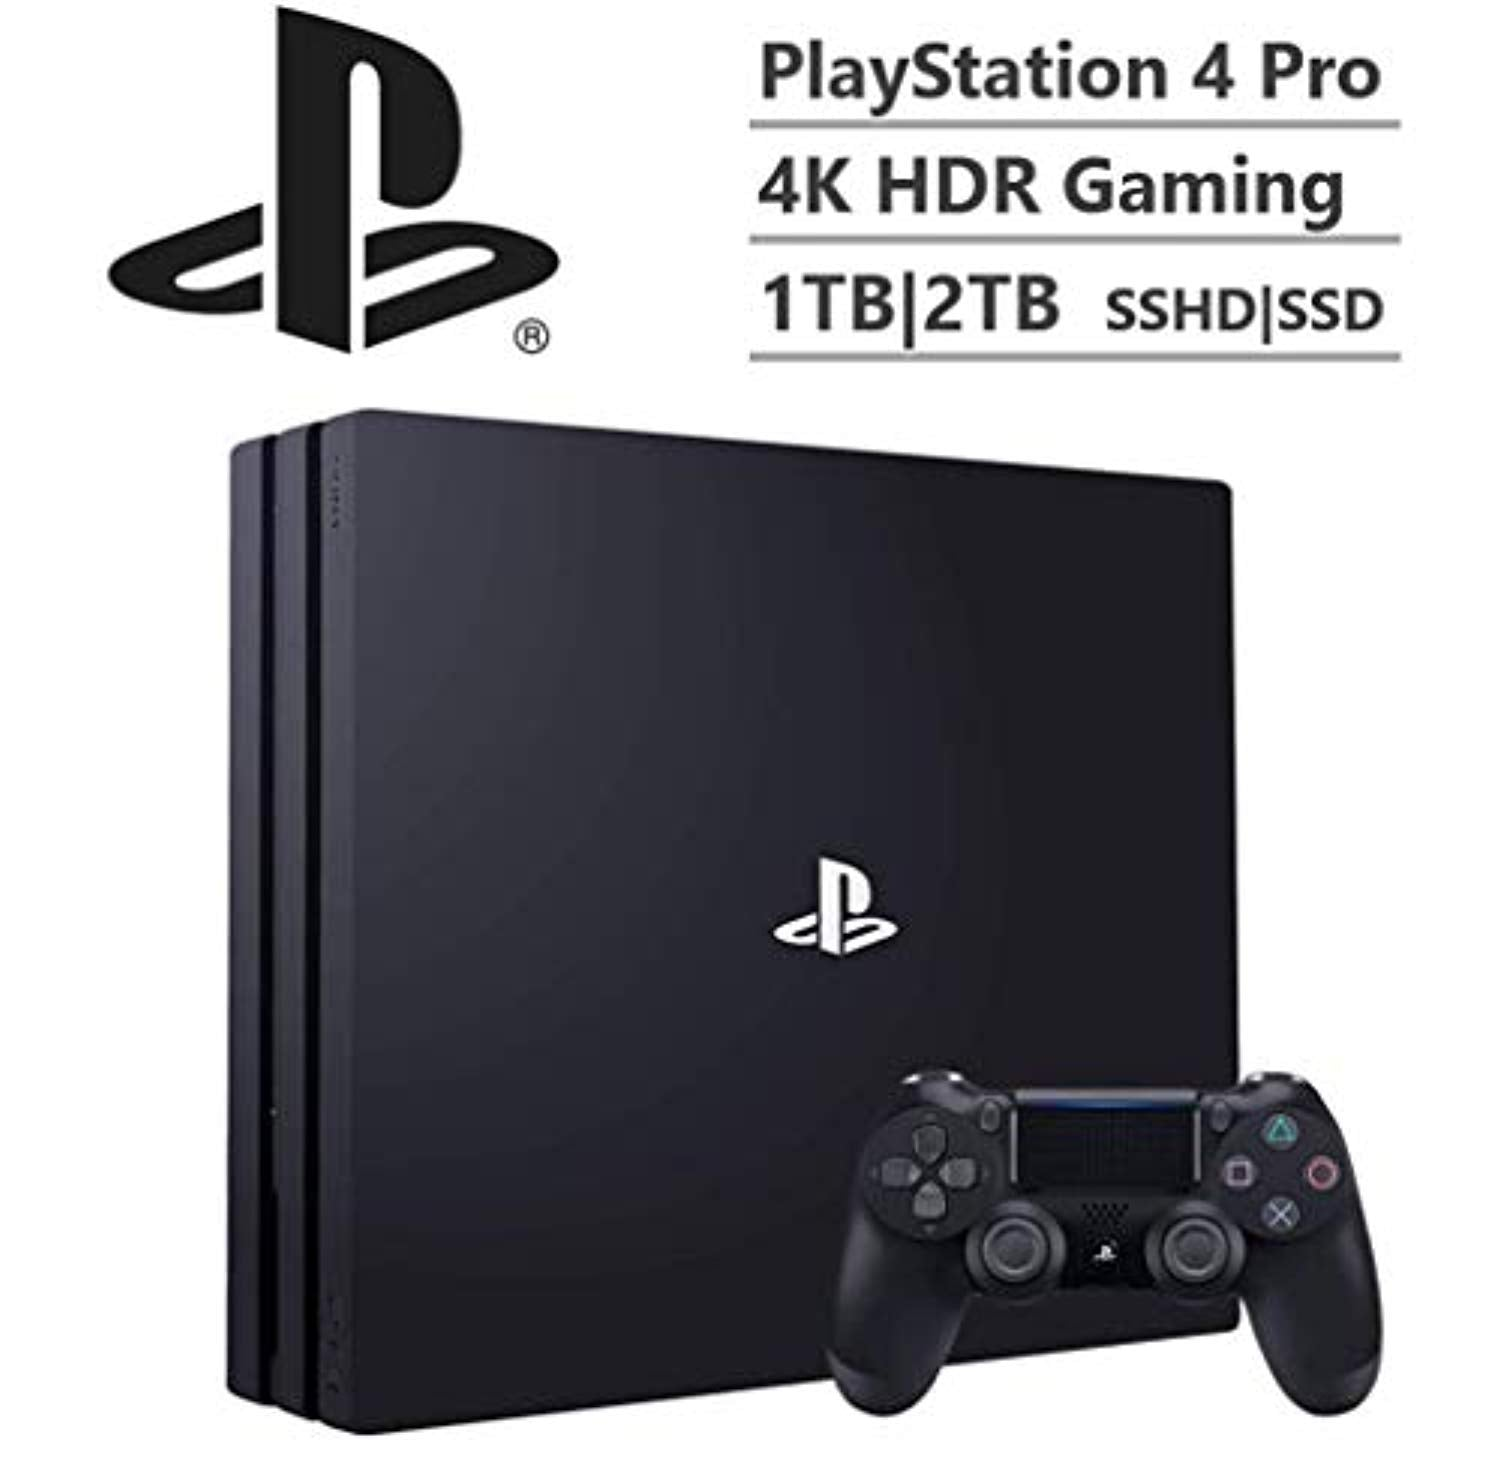 Sony Playstation 4 Pro 4K HDR Gaming Console with DualShock 4 Wireless Controller Upgrade Your PS4 Storage to 1TB|2TB SSHD|SSD